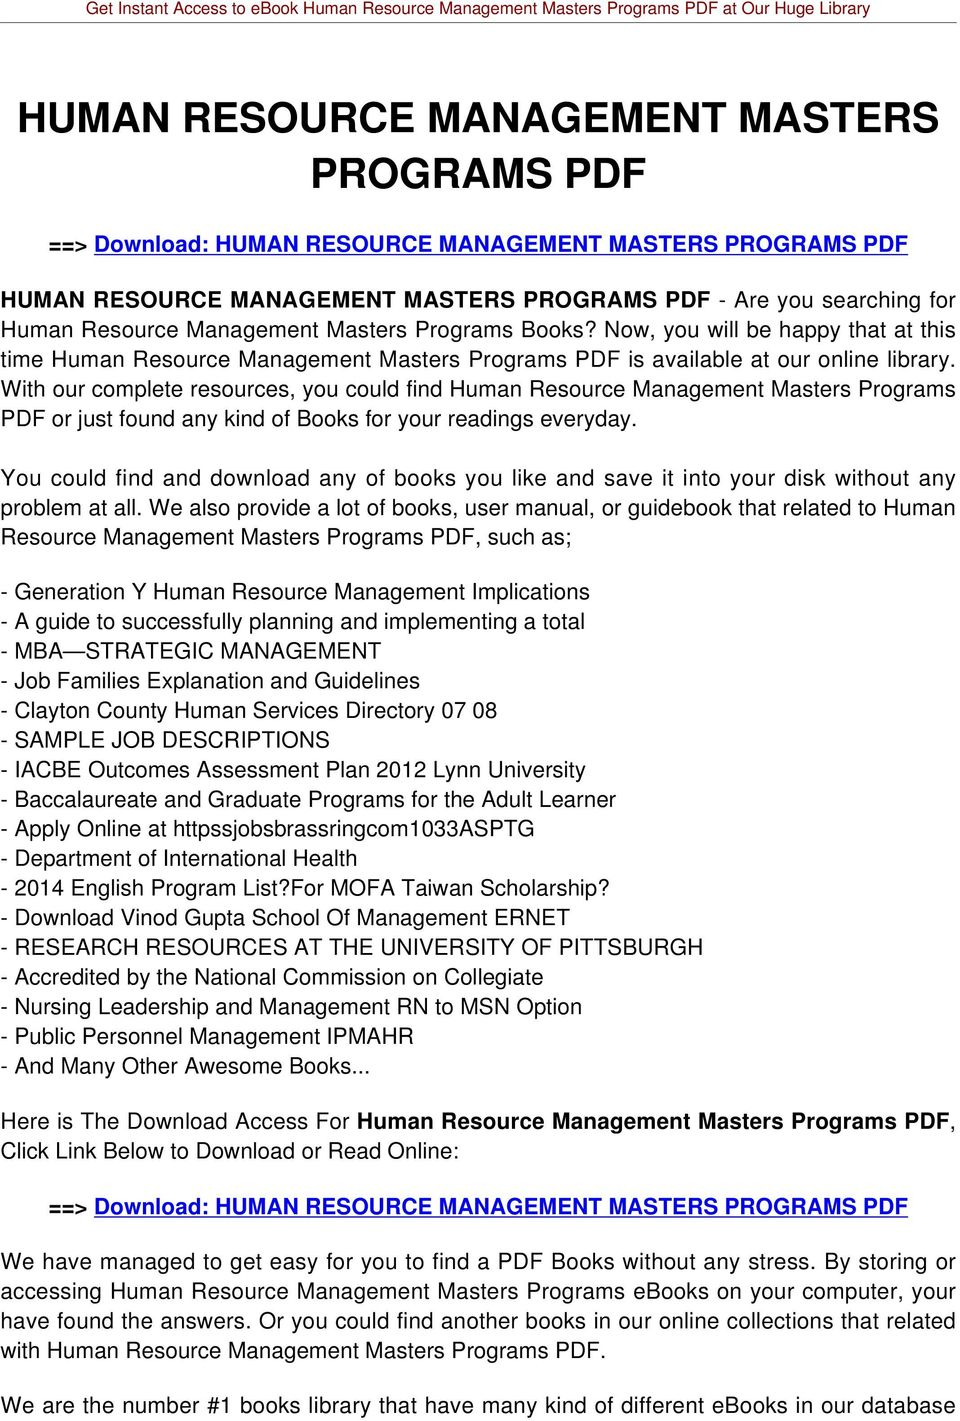 With our complete resources, you could find Human Resource Management Masters Programs PDF or just found any kind of Books for your readings everyday.